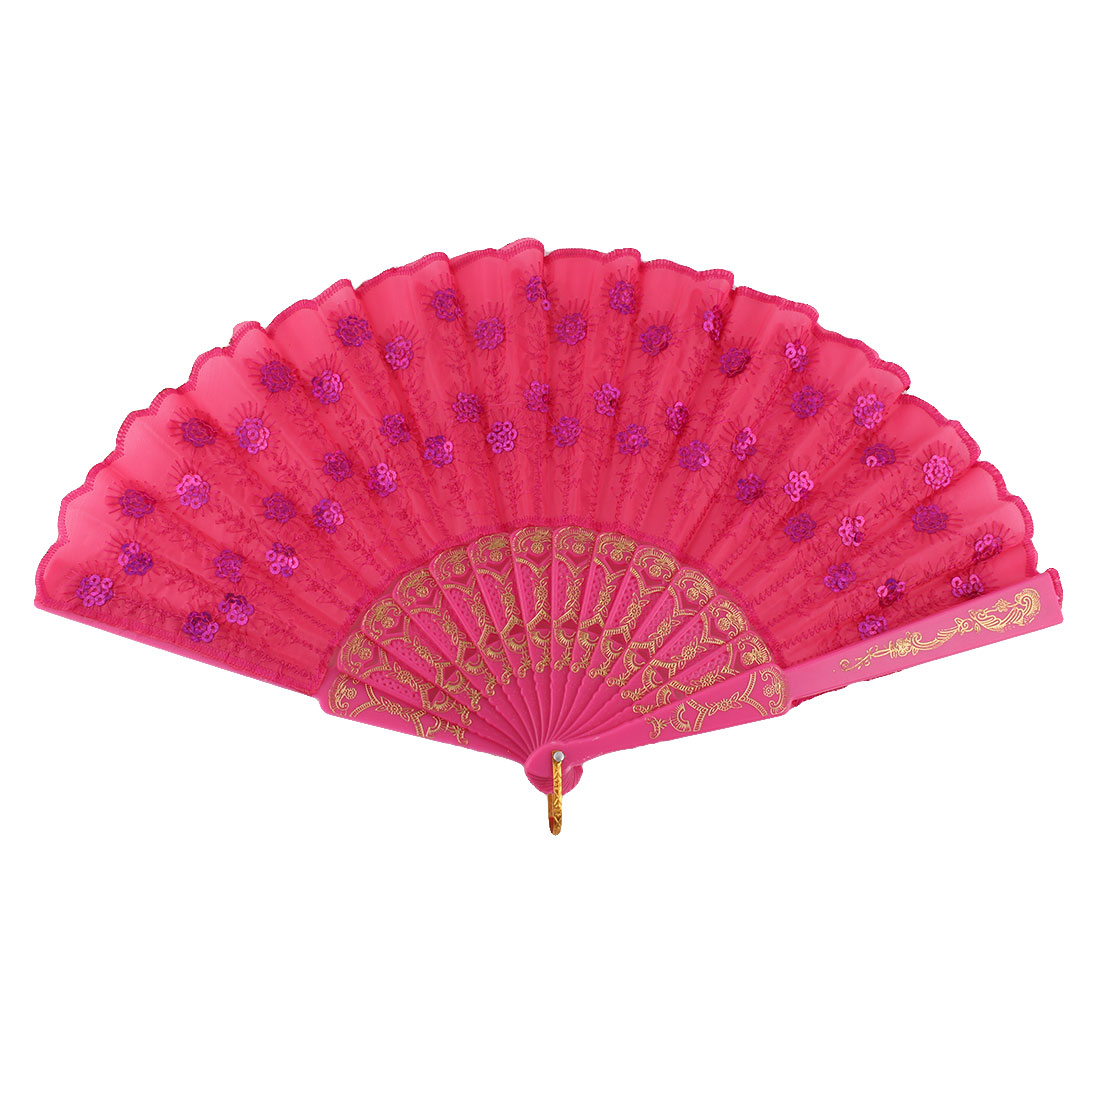 Lady Plastic Handle Embroidered Sequin Flower Dancing Folding Fan Fuchsia Purple